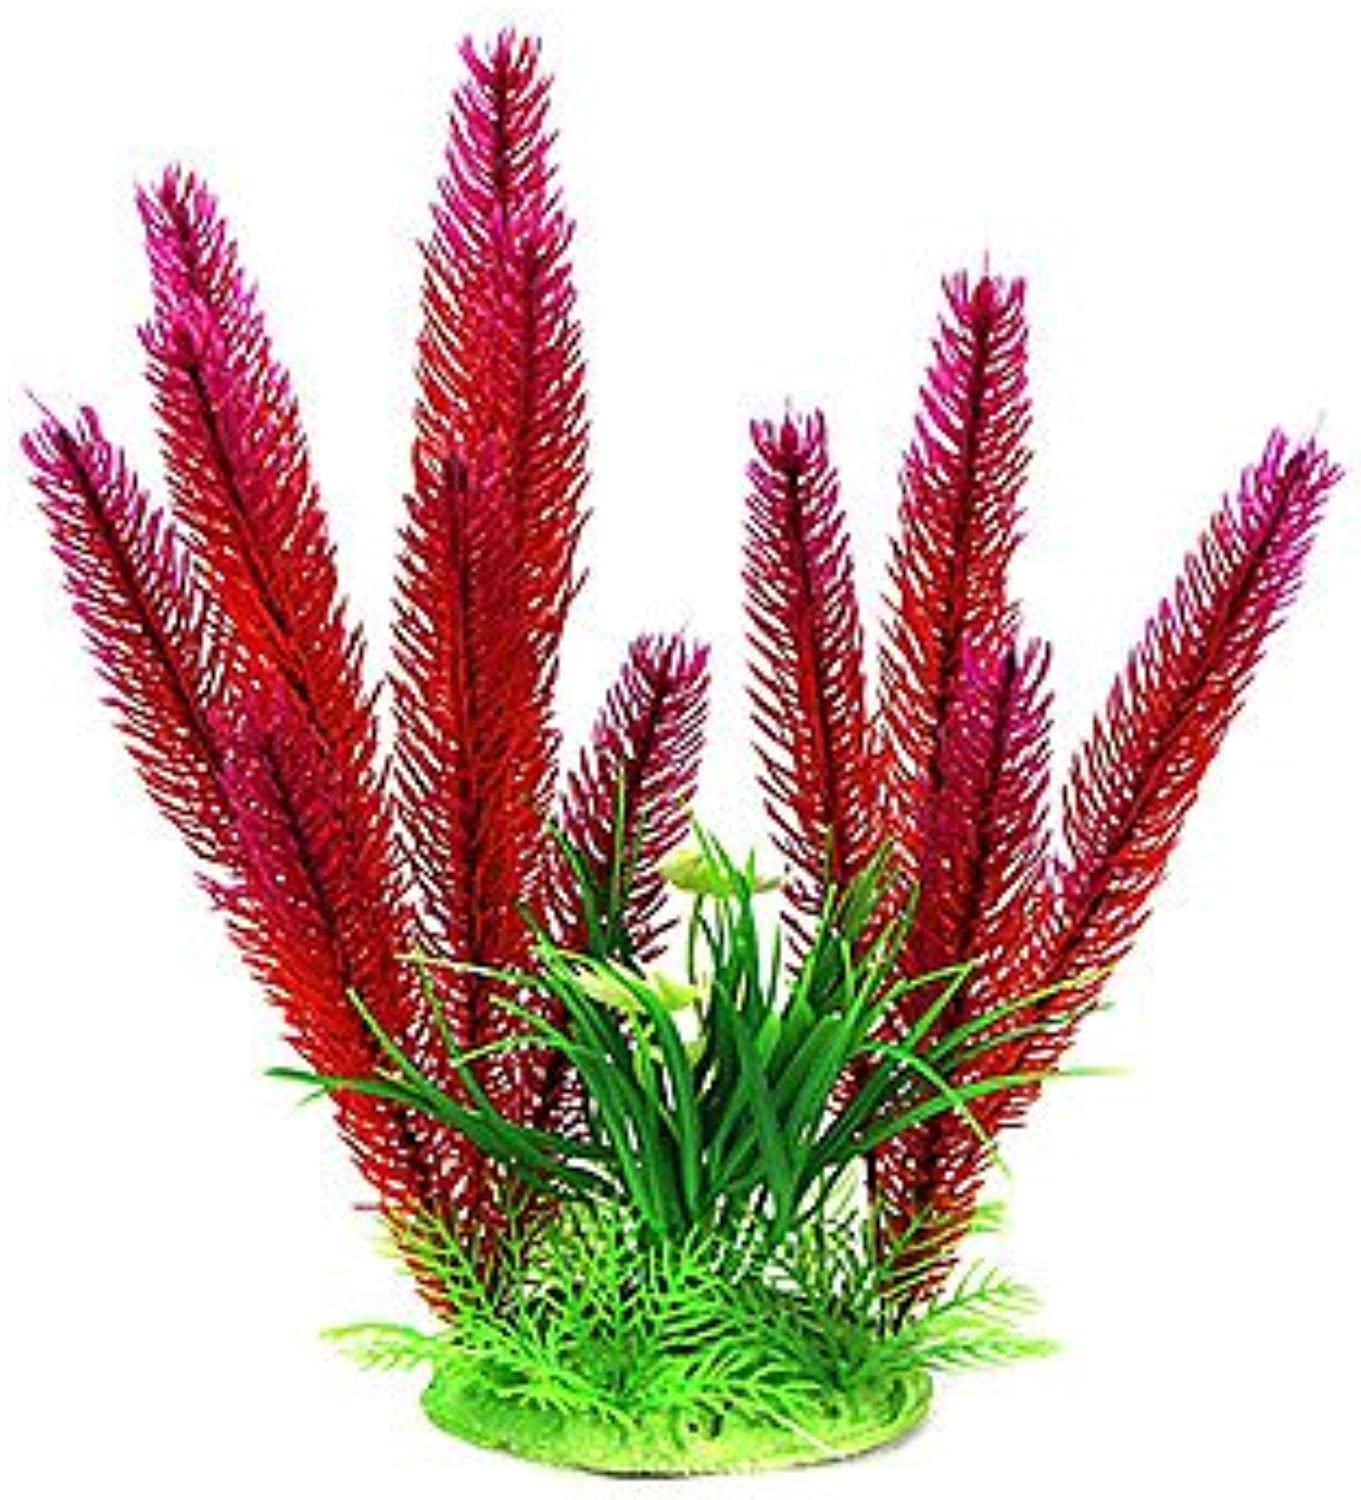 Quick shopping 33cm Red Simulation Plants for Fish Tank Decoration